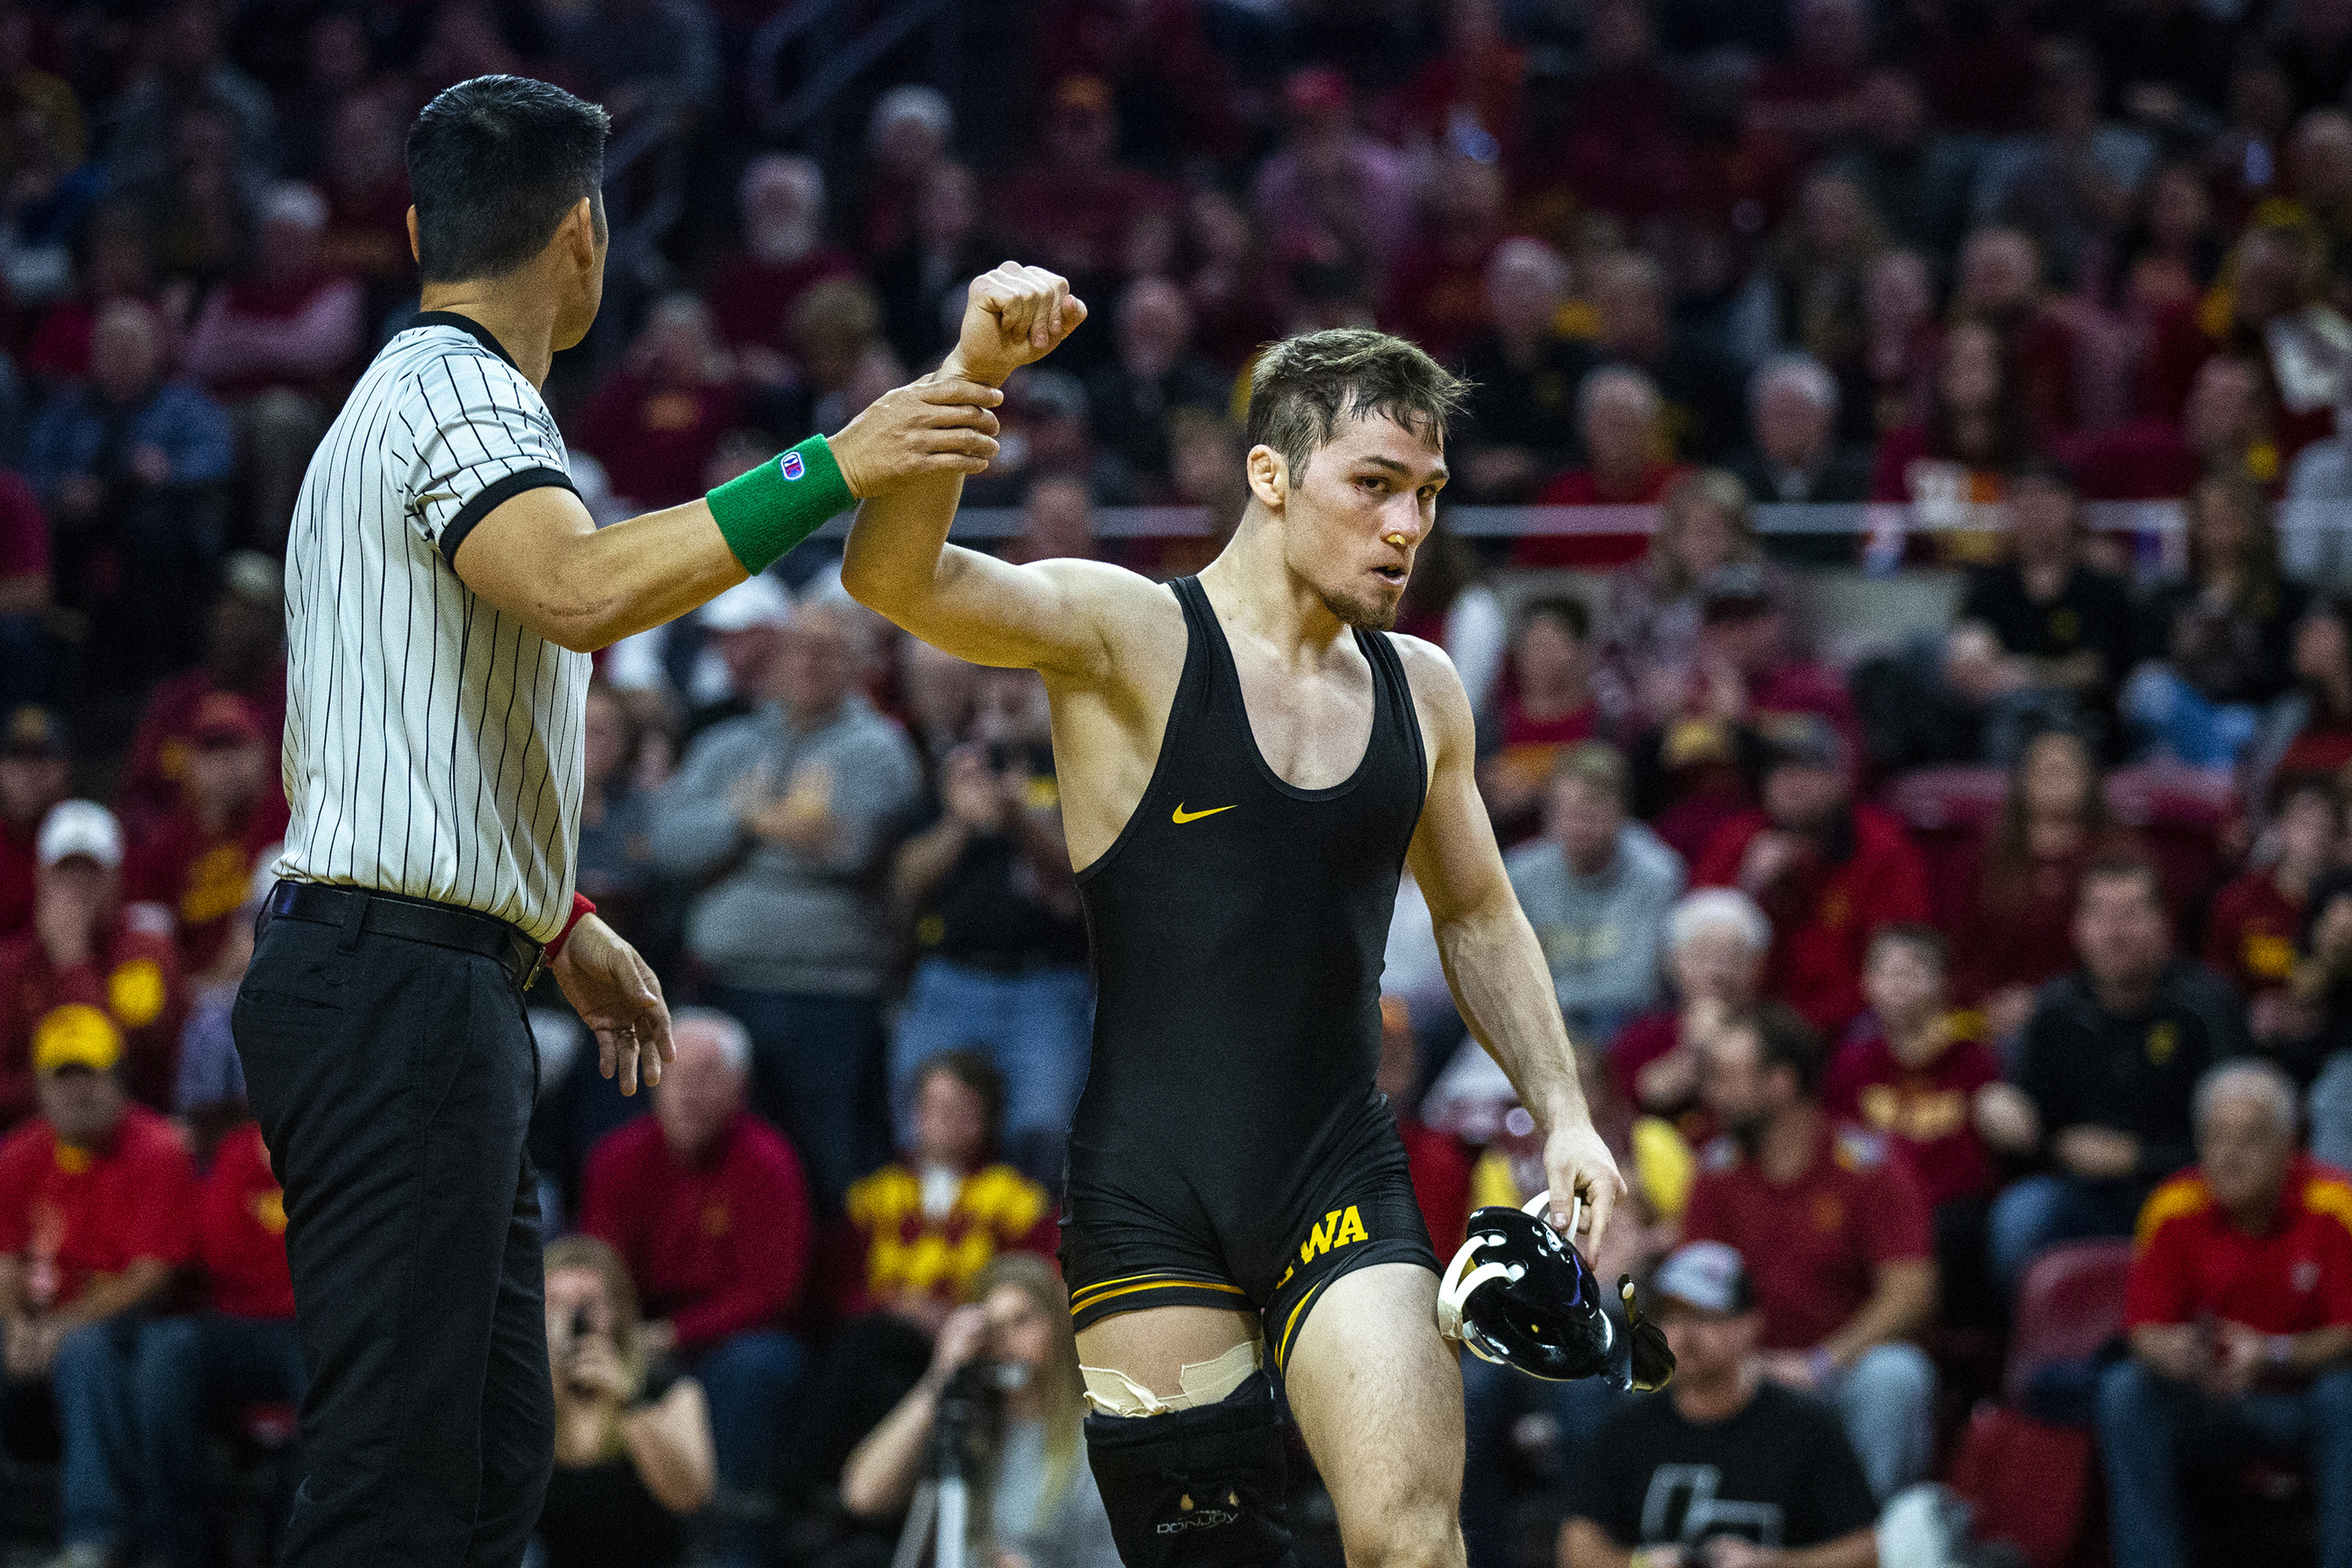 FILE - In this Nov. 24, 2019, file photo, Iowa's Spencer Lee wins by technical fall against Iowa State's Alex Mackall at 125 pounds during the Cy-Hawk dual wrestling match at Hilton Coliseum, in Ames, Iowa. Lee and Oregon women's basketball star Sabrina Ionescu shared the Sullivan Award on Wednesday night, April 29, 2020, as the country's top amateur athlete. (Kelsey Kremer/The Des Moines Register via AP, File)